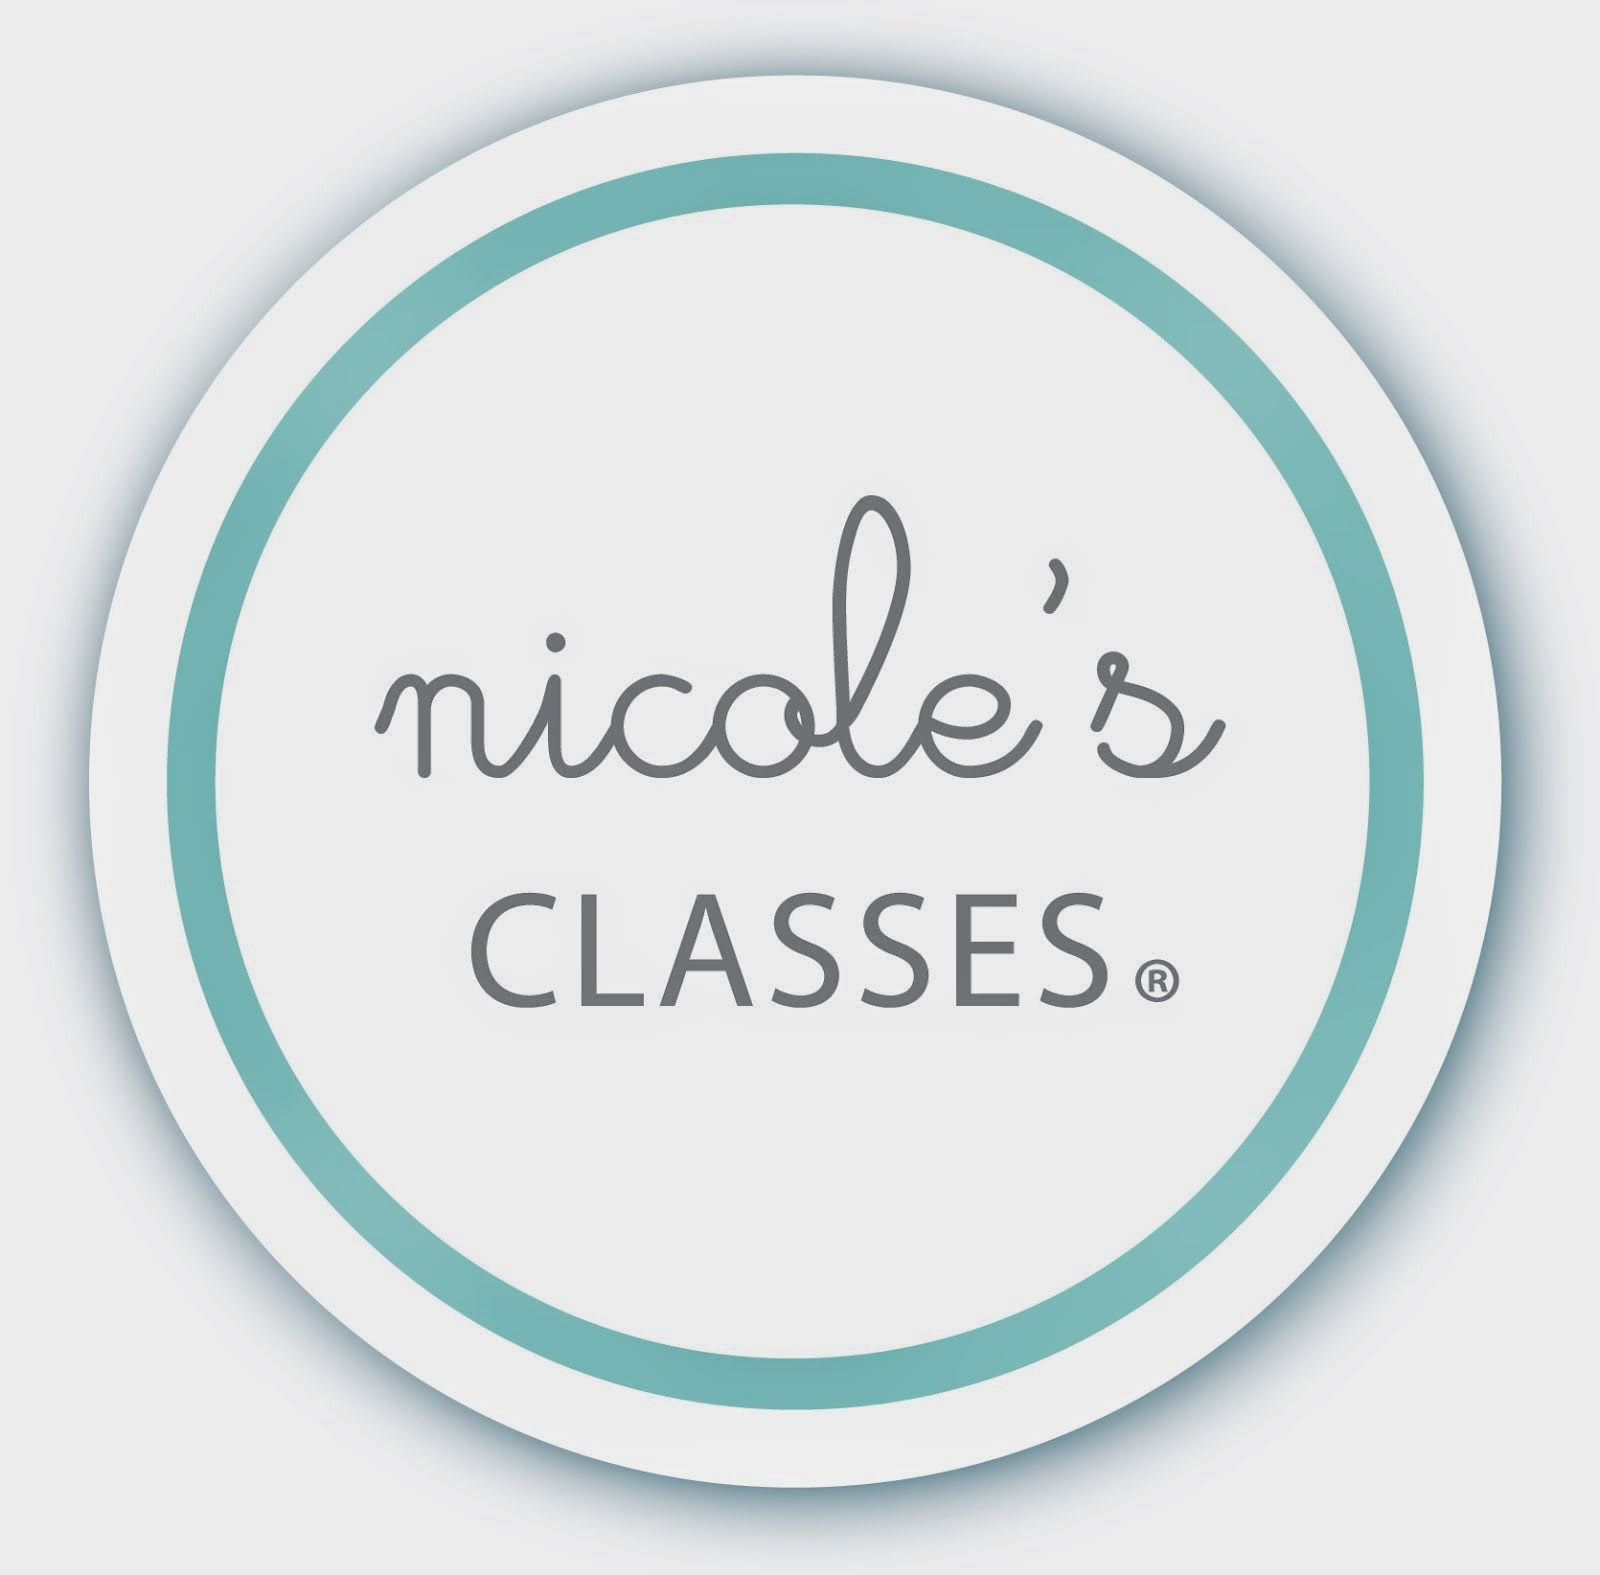 nicoles classes